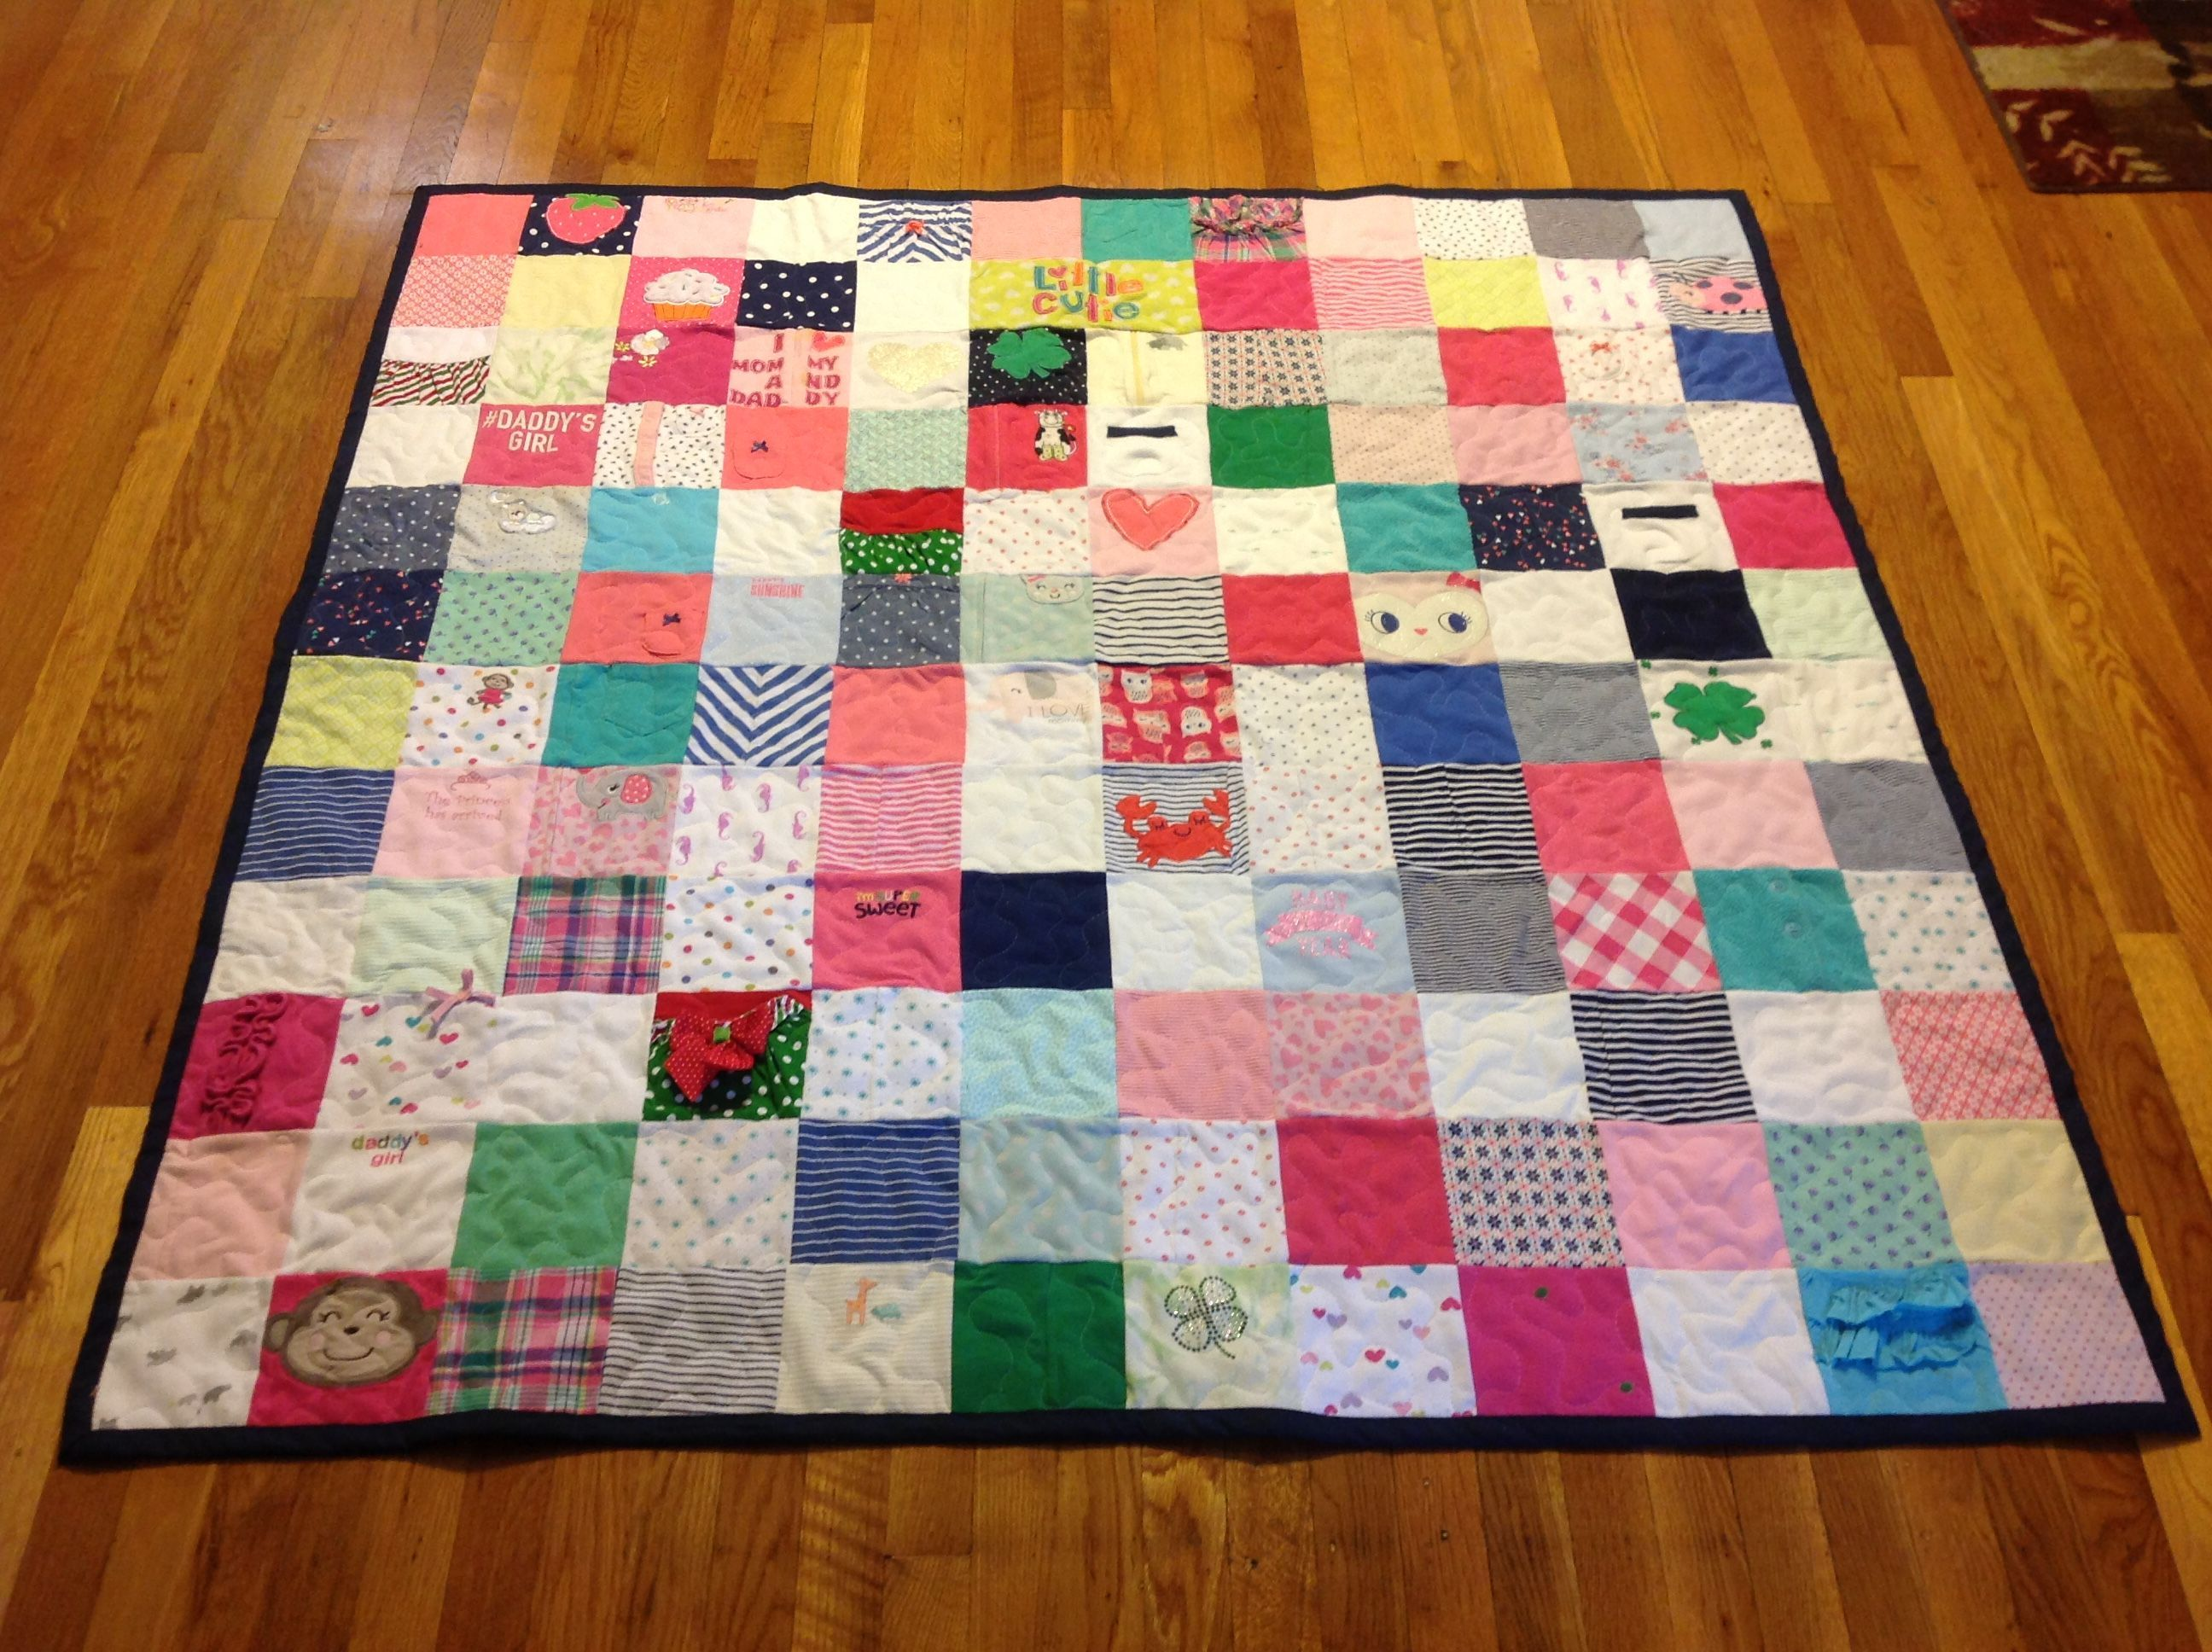 Buy A Handmade Custom Baby Clothing Memory Quilt Made To Order From